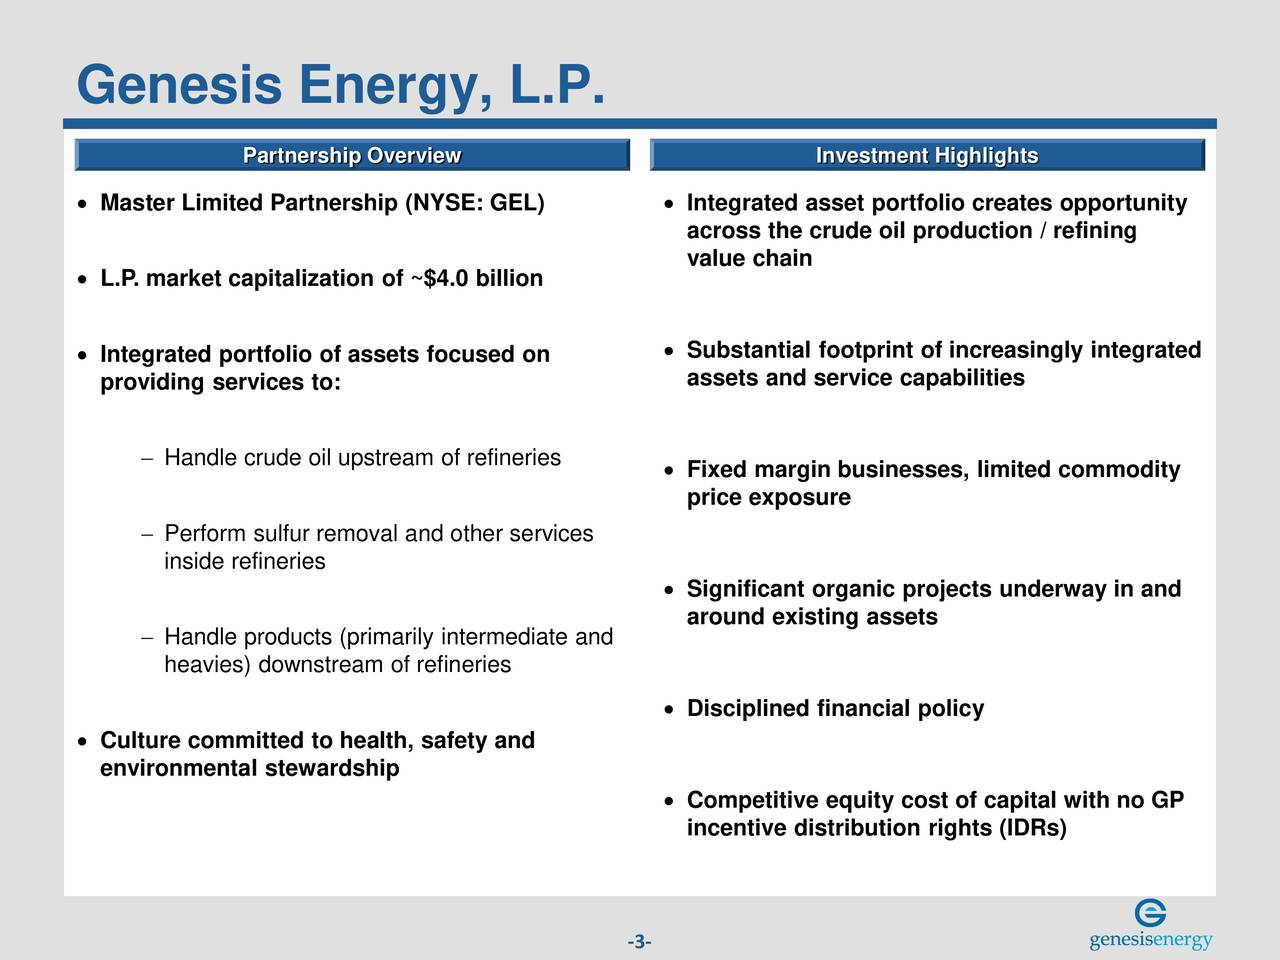 Partnership Overview Investment Highlights Master Limited Partnership (NYSE: GEL)  Integrated asset portfolio creates opportunity across the crude oil production / refining value chain L.P. market capitalization of ~$4.0 billion Integrated portfolio of assets focused on  Substantial footprint of increasingly integrated providing services to: assets and service capabilities Handle crude oil upstream of refineries Fixed margin businesses, limited commodity price exposure Perform sulfur removal and other services inside refineries Significant organic projects underway in and around existing assets Handle products (primarily intermediate and heavies) downstream of refineries Disciplined financial policy Culture committed to health, safety and environmental stewardship Competitive equity cost of capital with no GP incentive distribution rights (IDRs) -3-